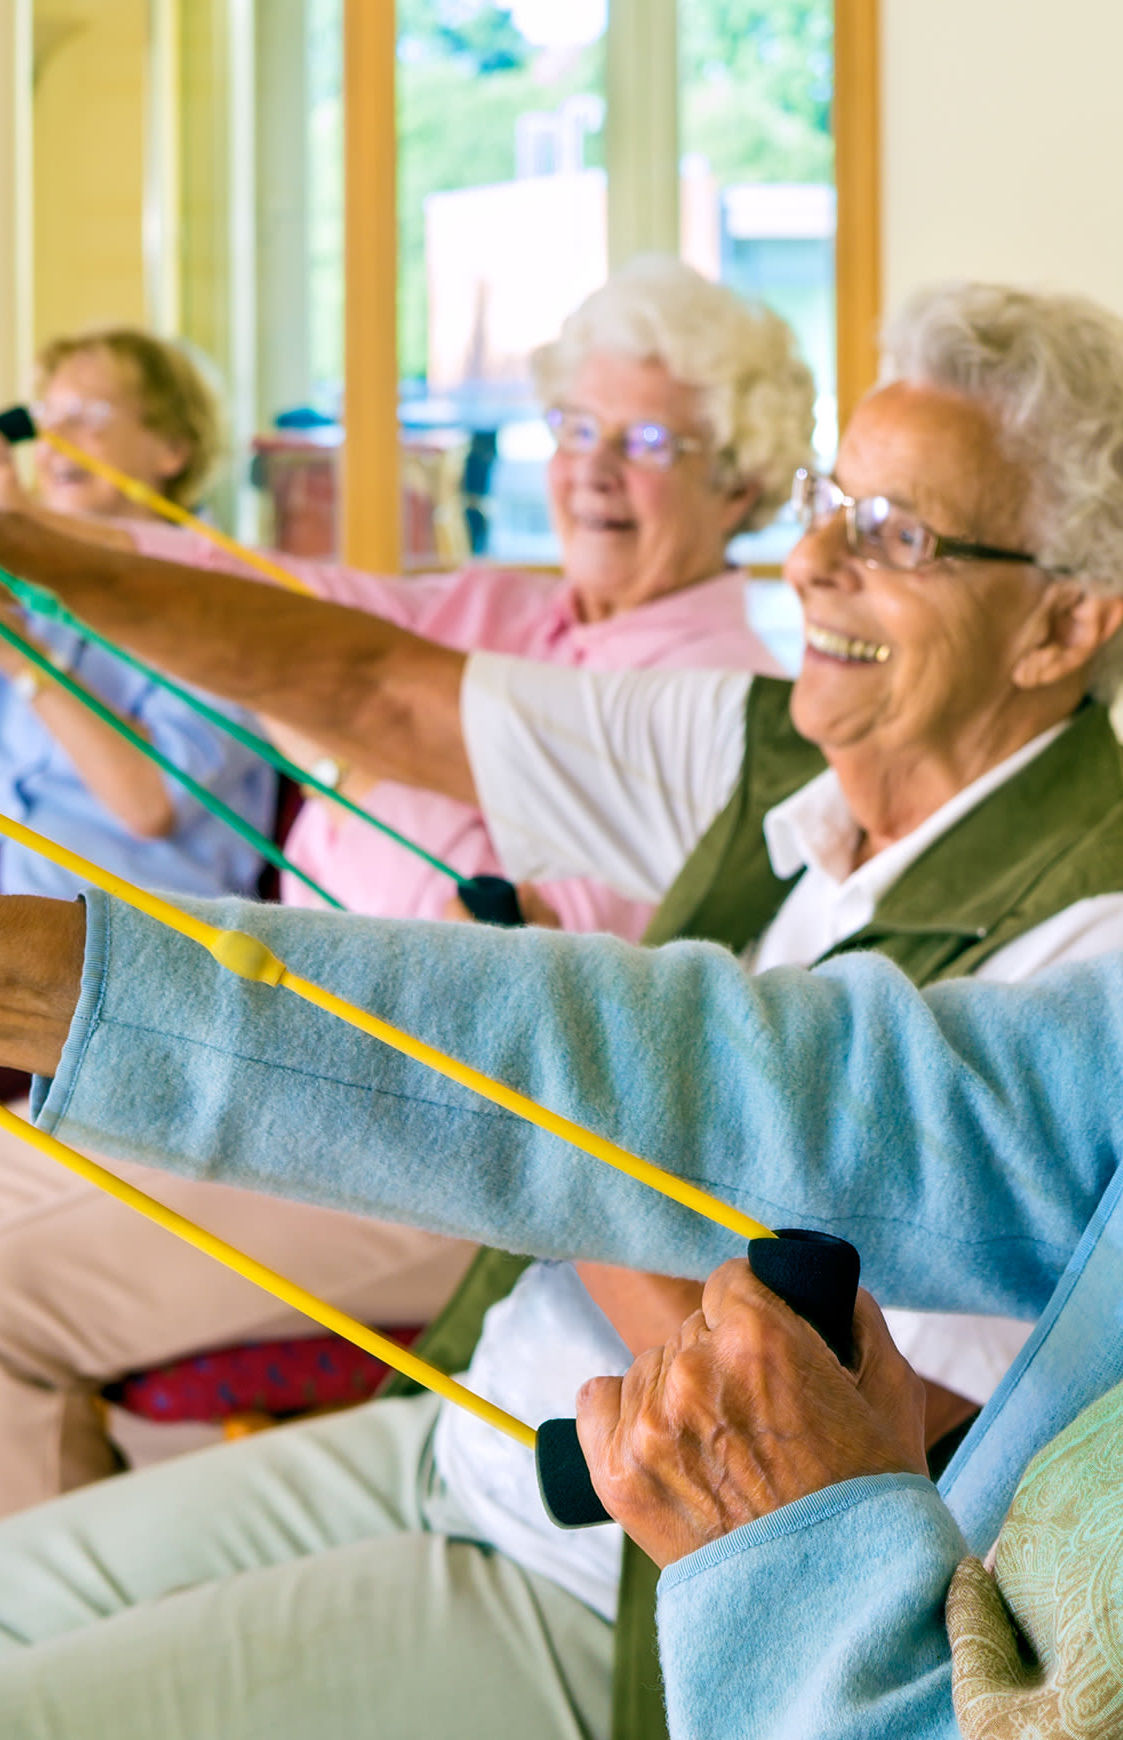 Residents exercising with rubber bands at The Reserve at Thousand Oaks in Thousand Oaks, California